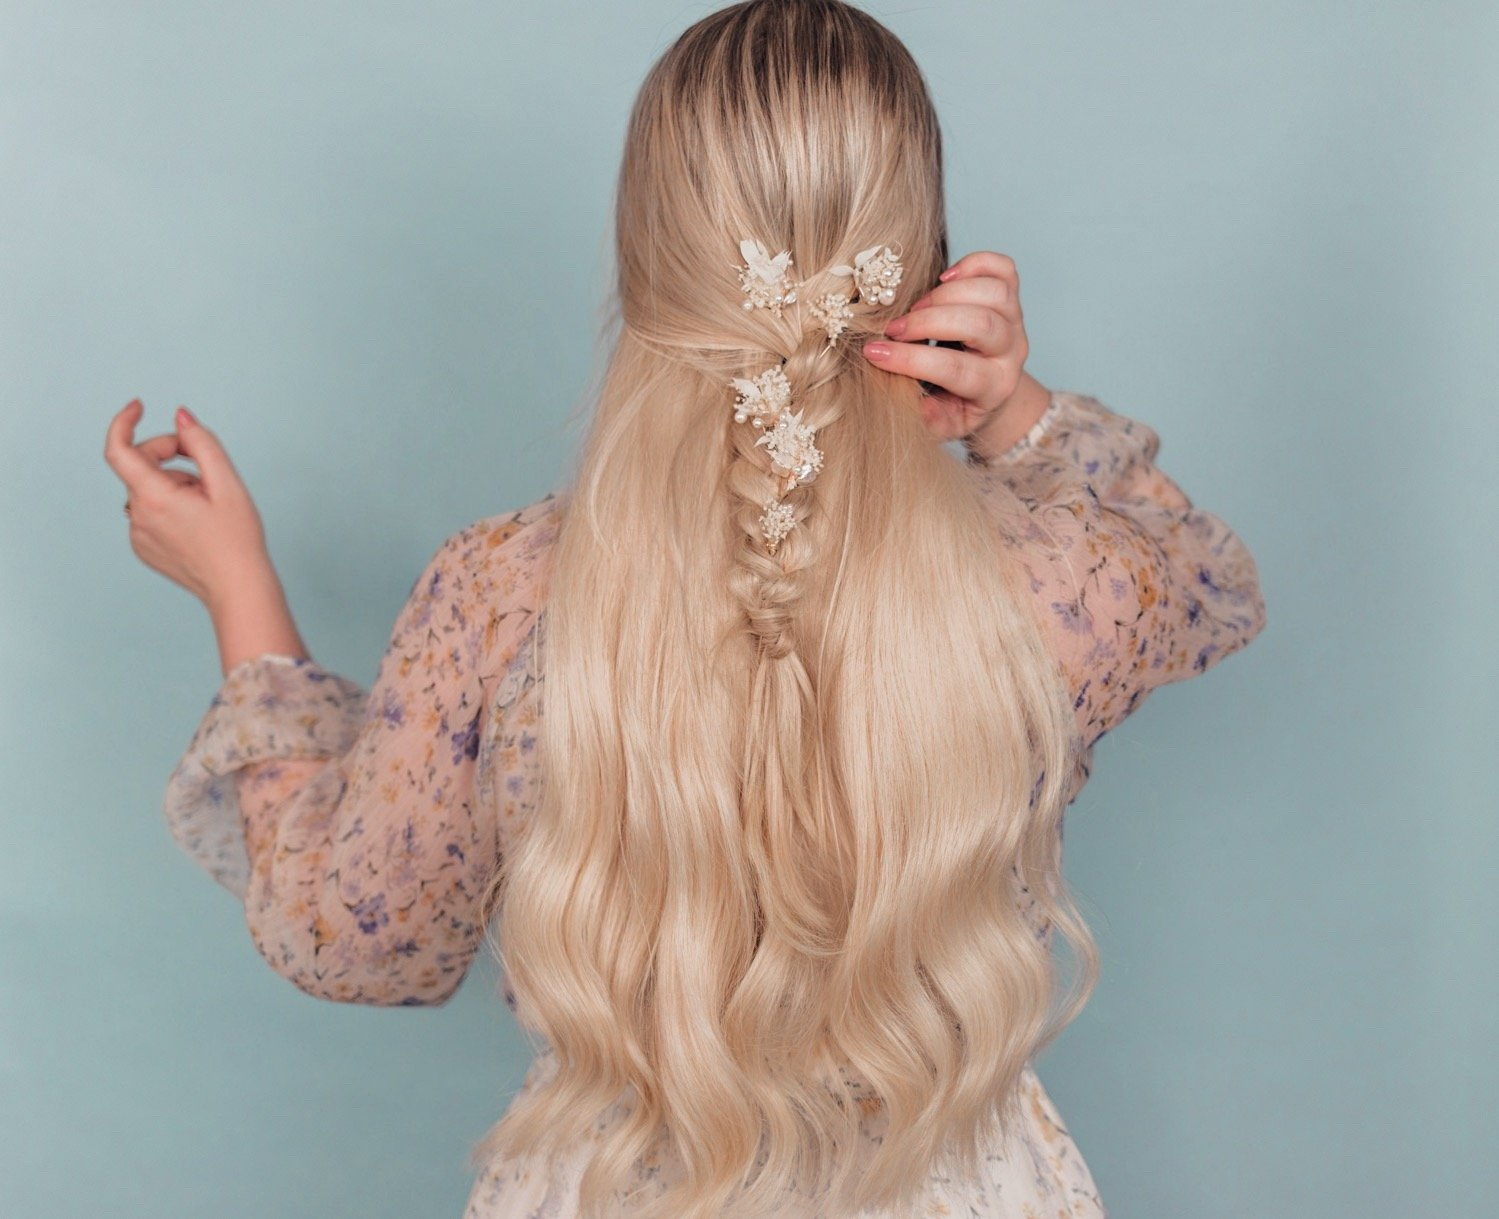 Elizabeth Hugen of Lizzie in Lace shares 5 simple summer hairstyles using hair accessories including beautiful floral pins placed in a boho braaid